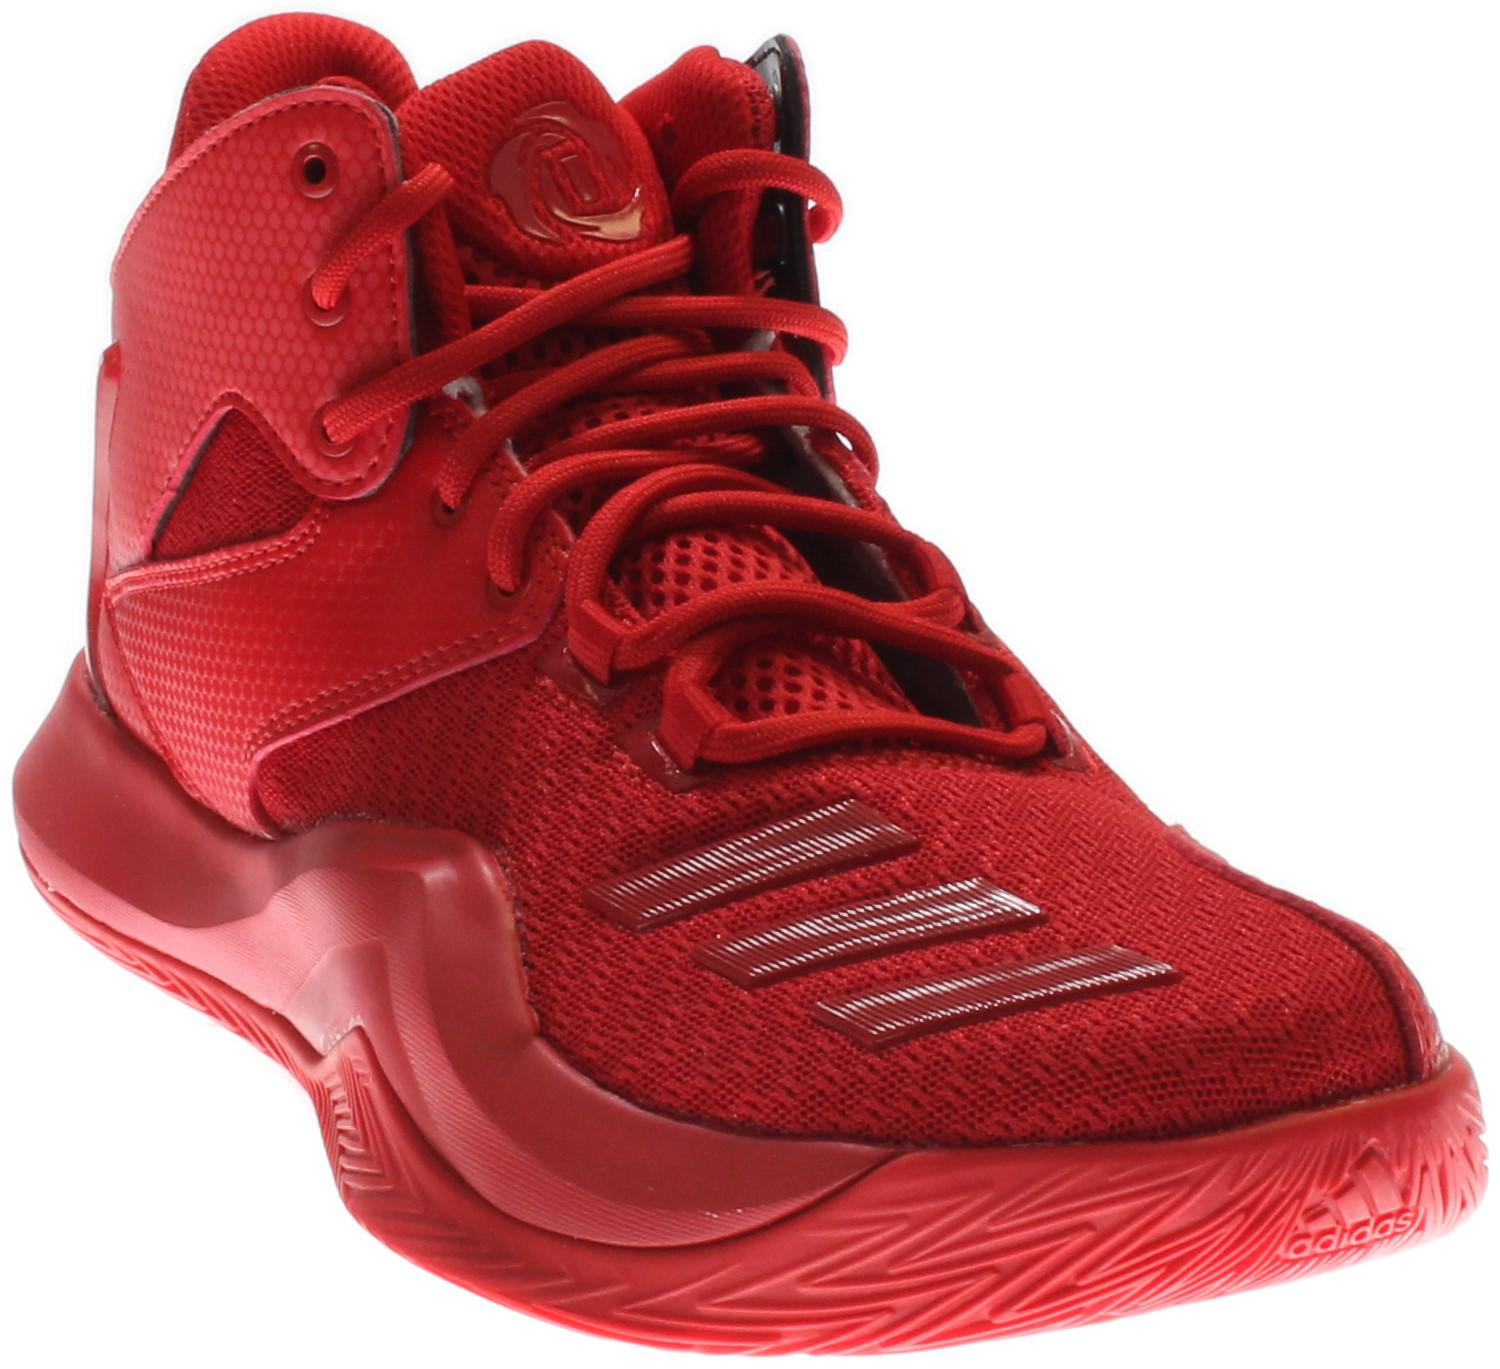 577a817cd874 Lyst - adidas D Rose 773 V in Red for Men